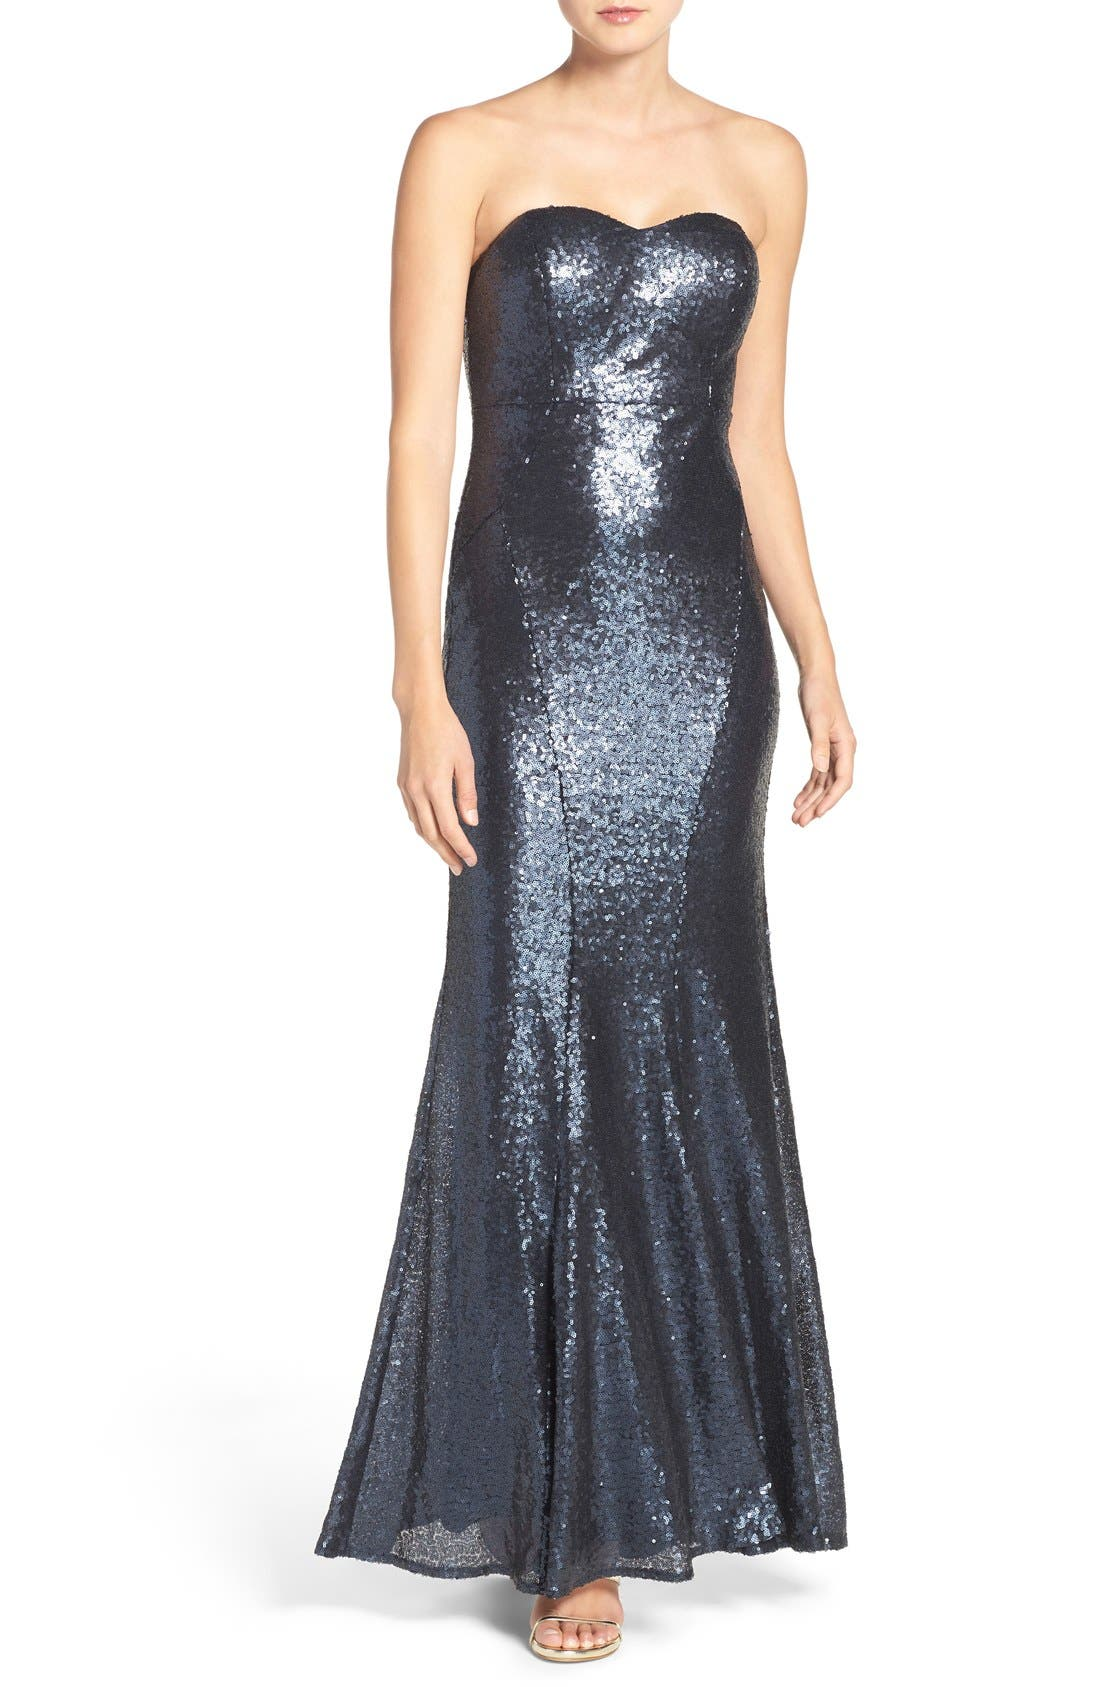 LULUS Strapless Sequin Mermaid Gown